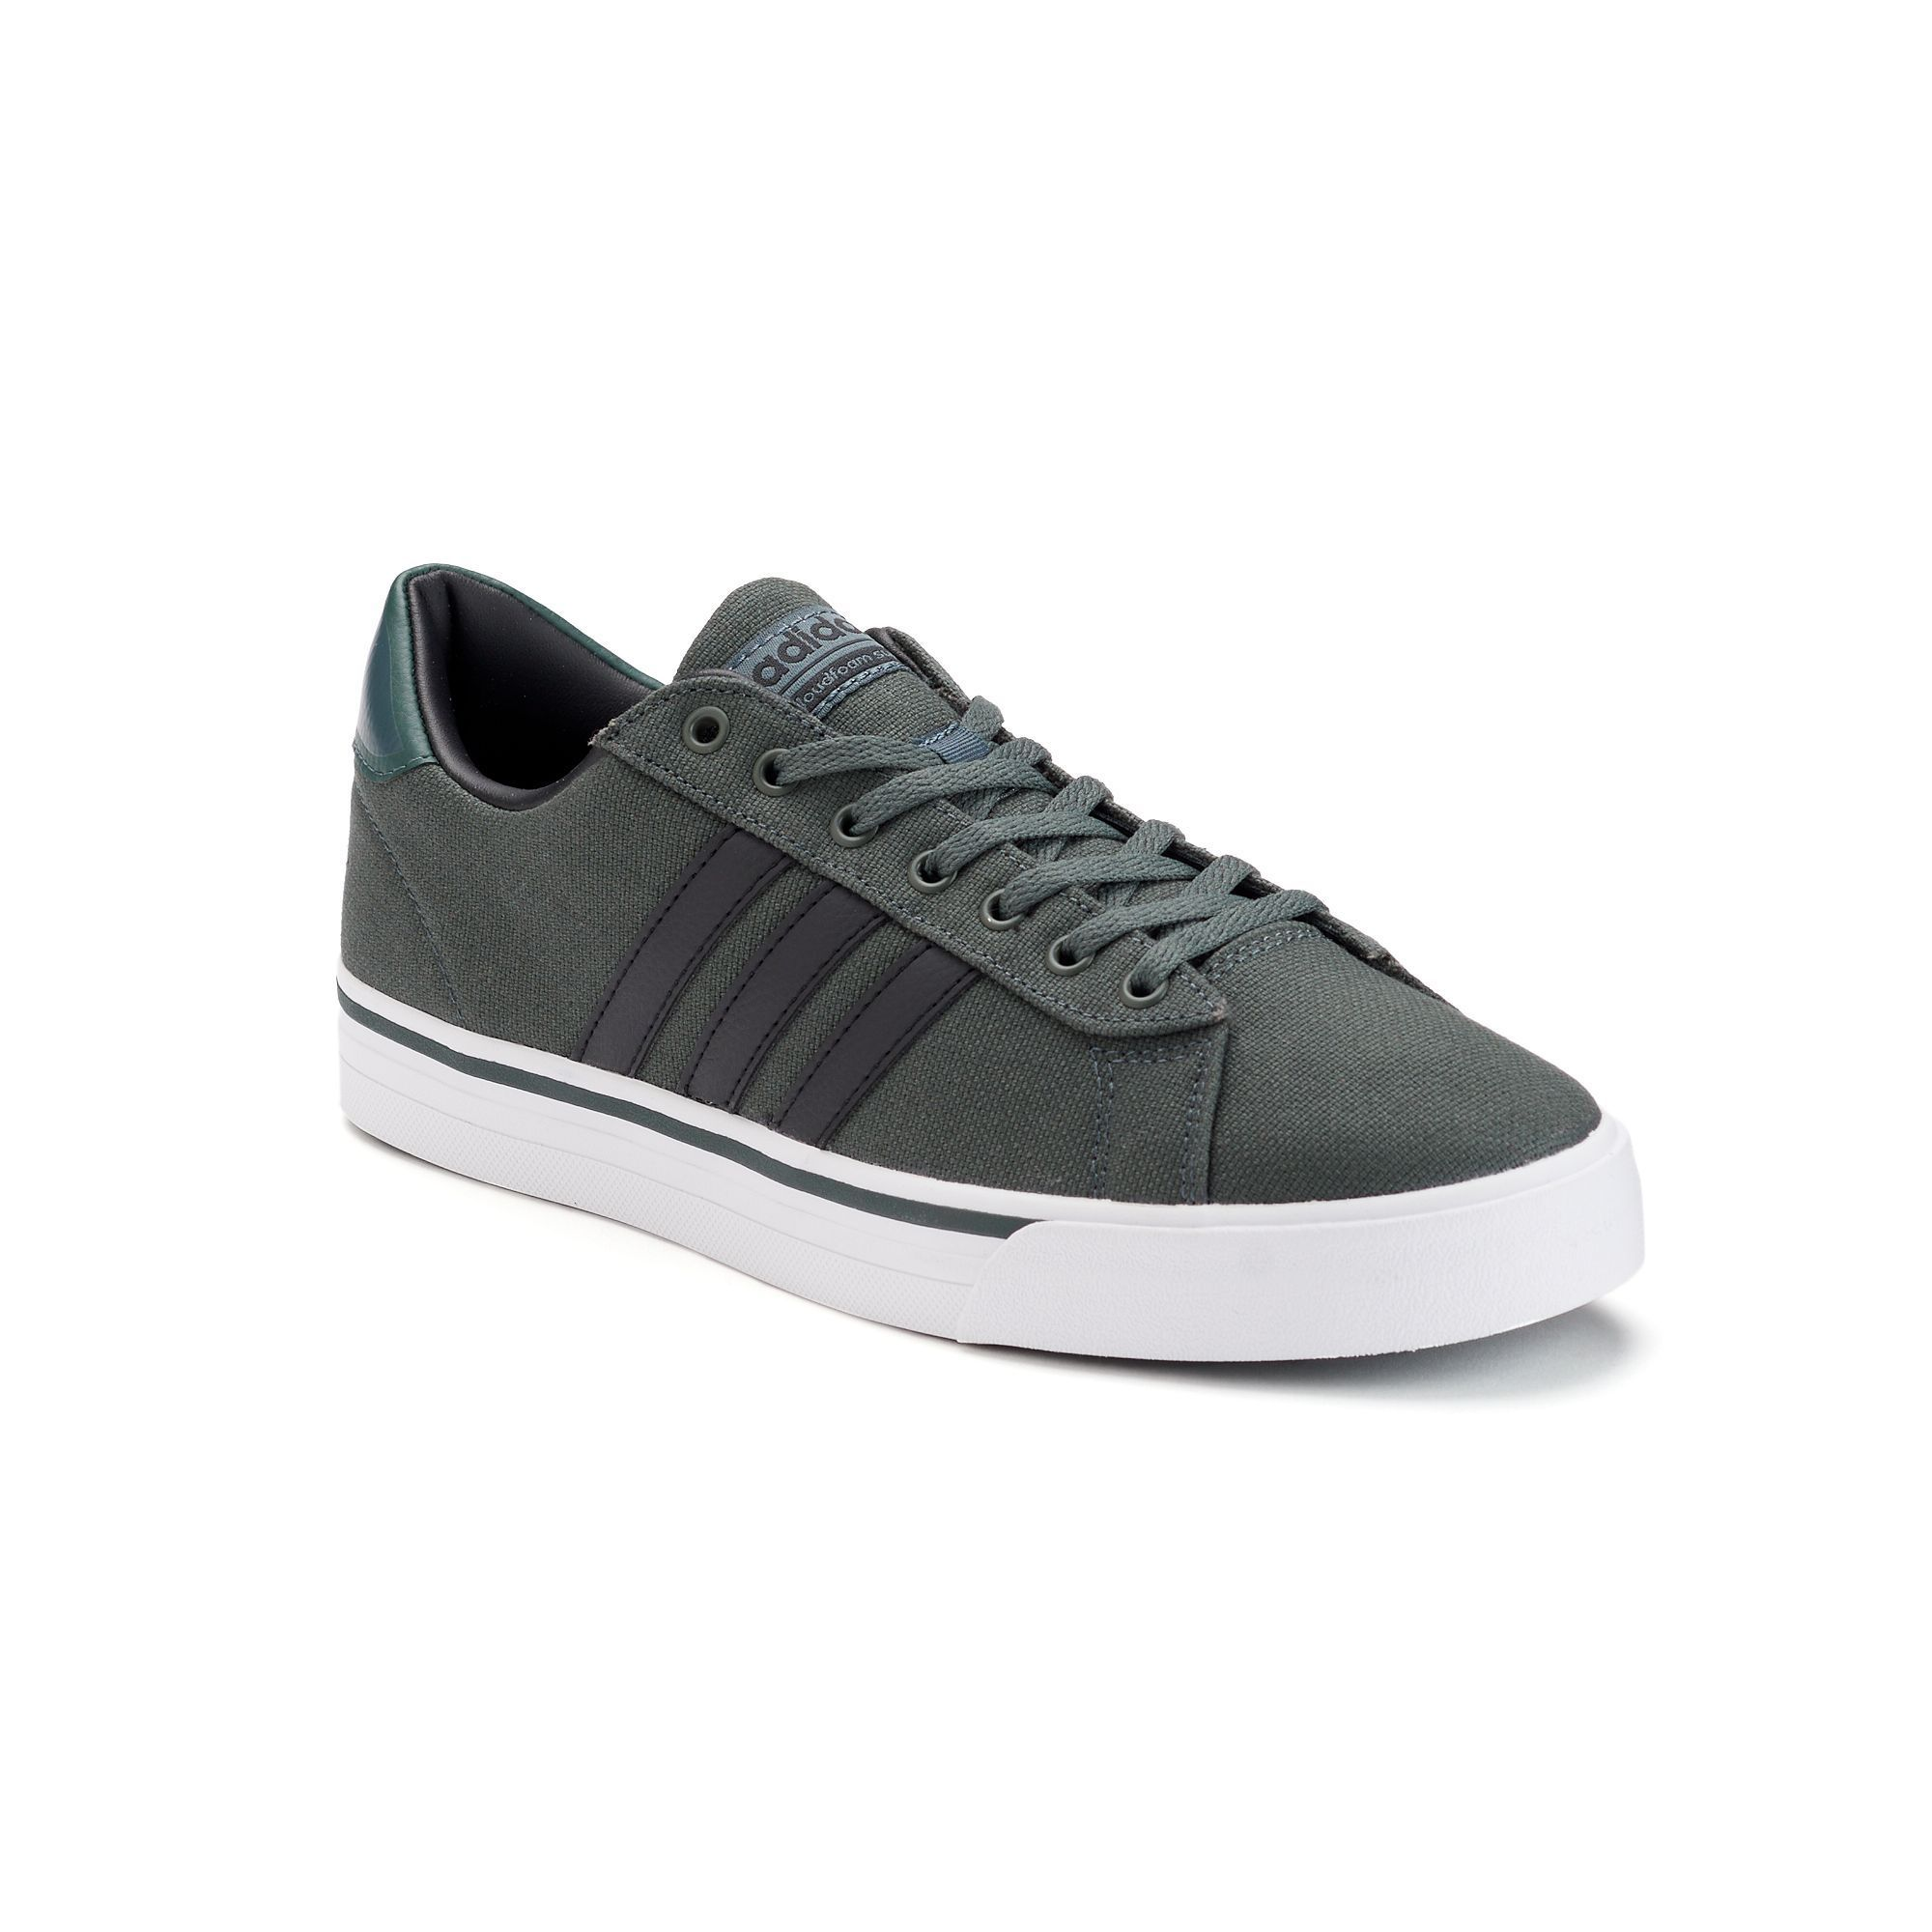 timeless design 86505 d729a Adidas NEO Cloudfoam Super Daily Mens Shoes, Size 10.5, Dark Green